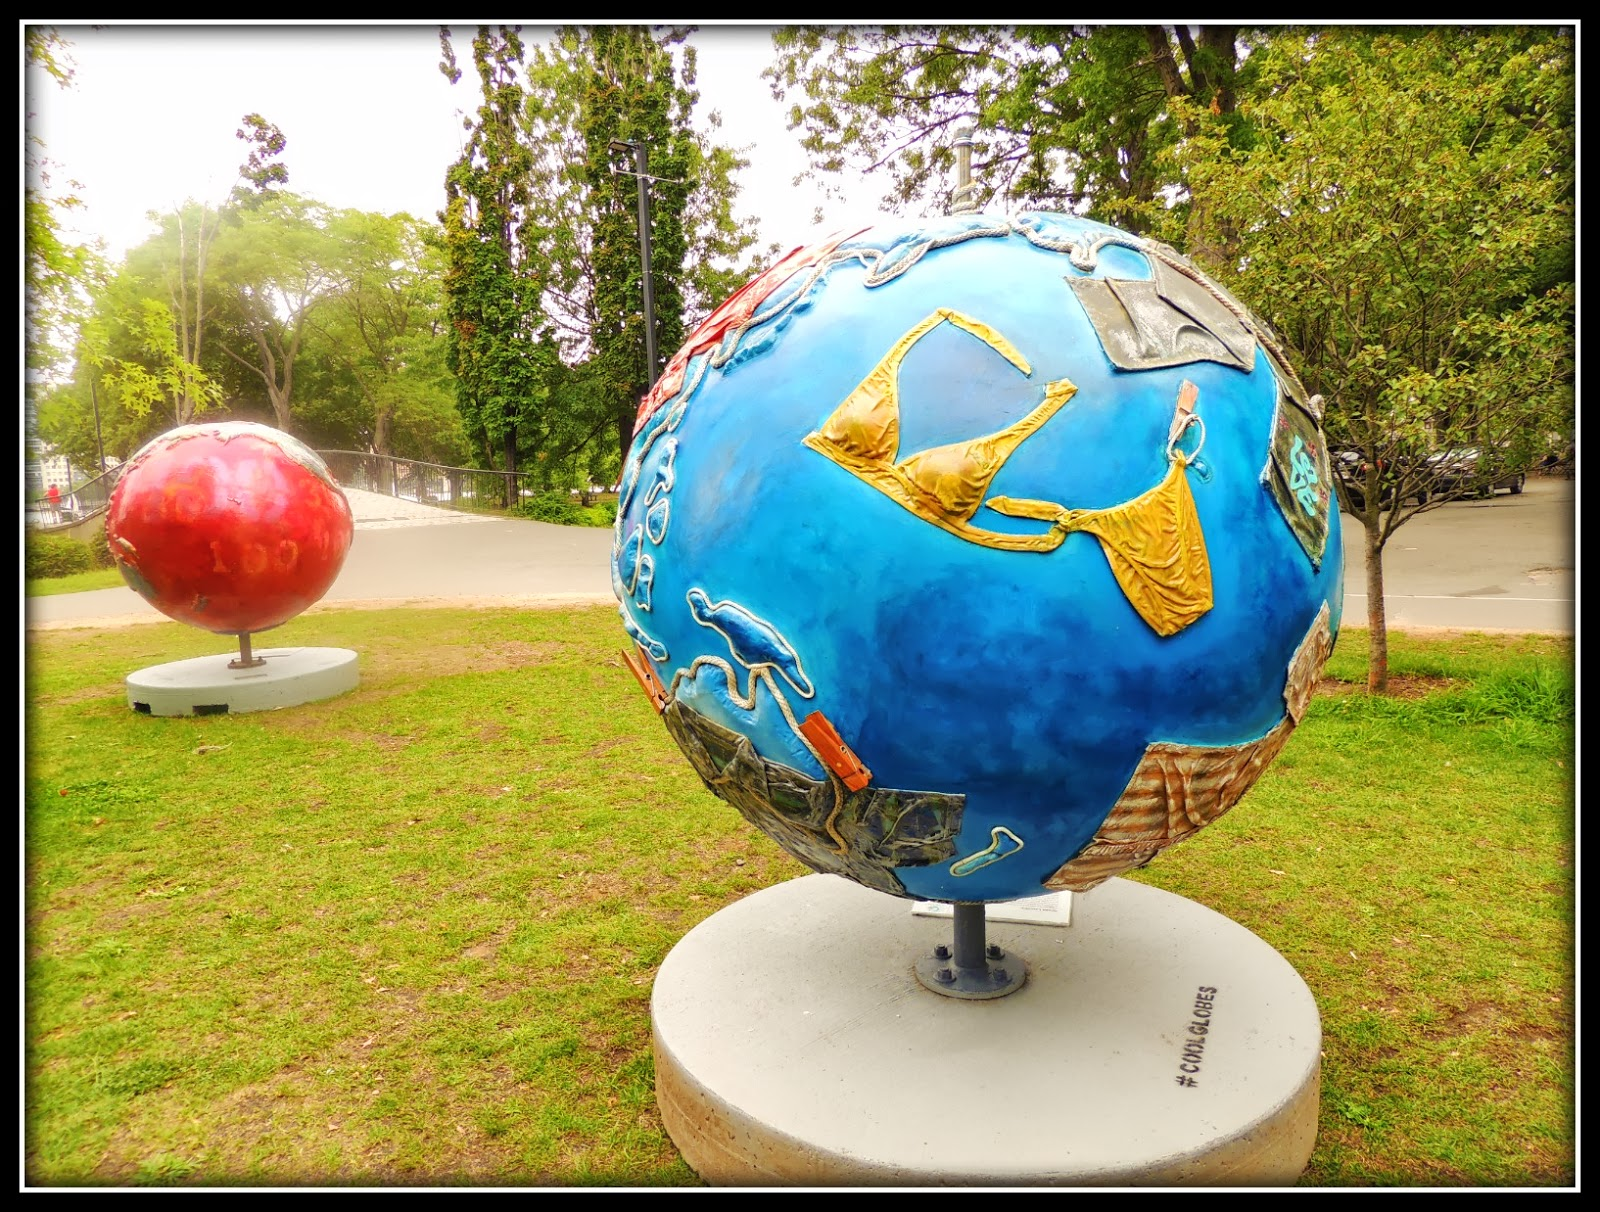 The Cool Globes en Boston: The Esplanade